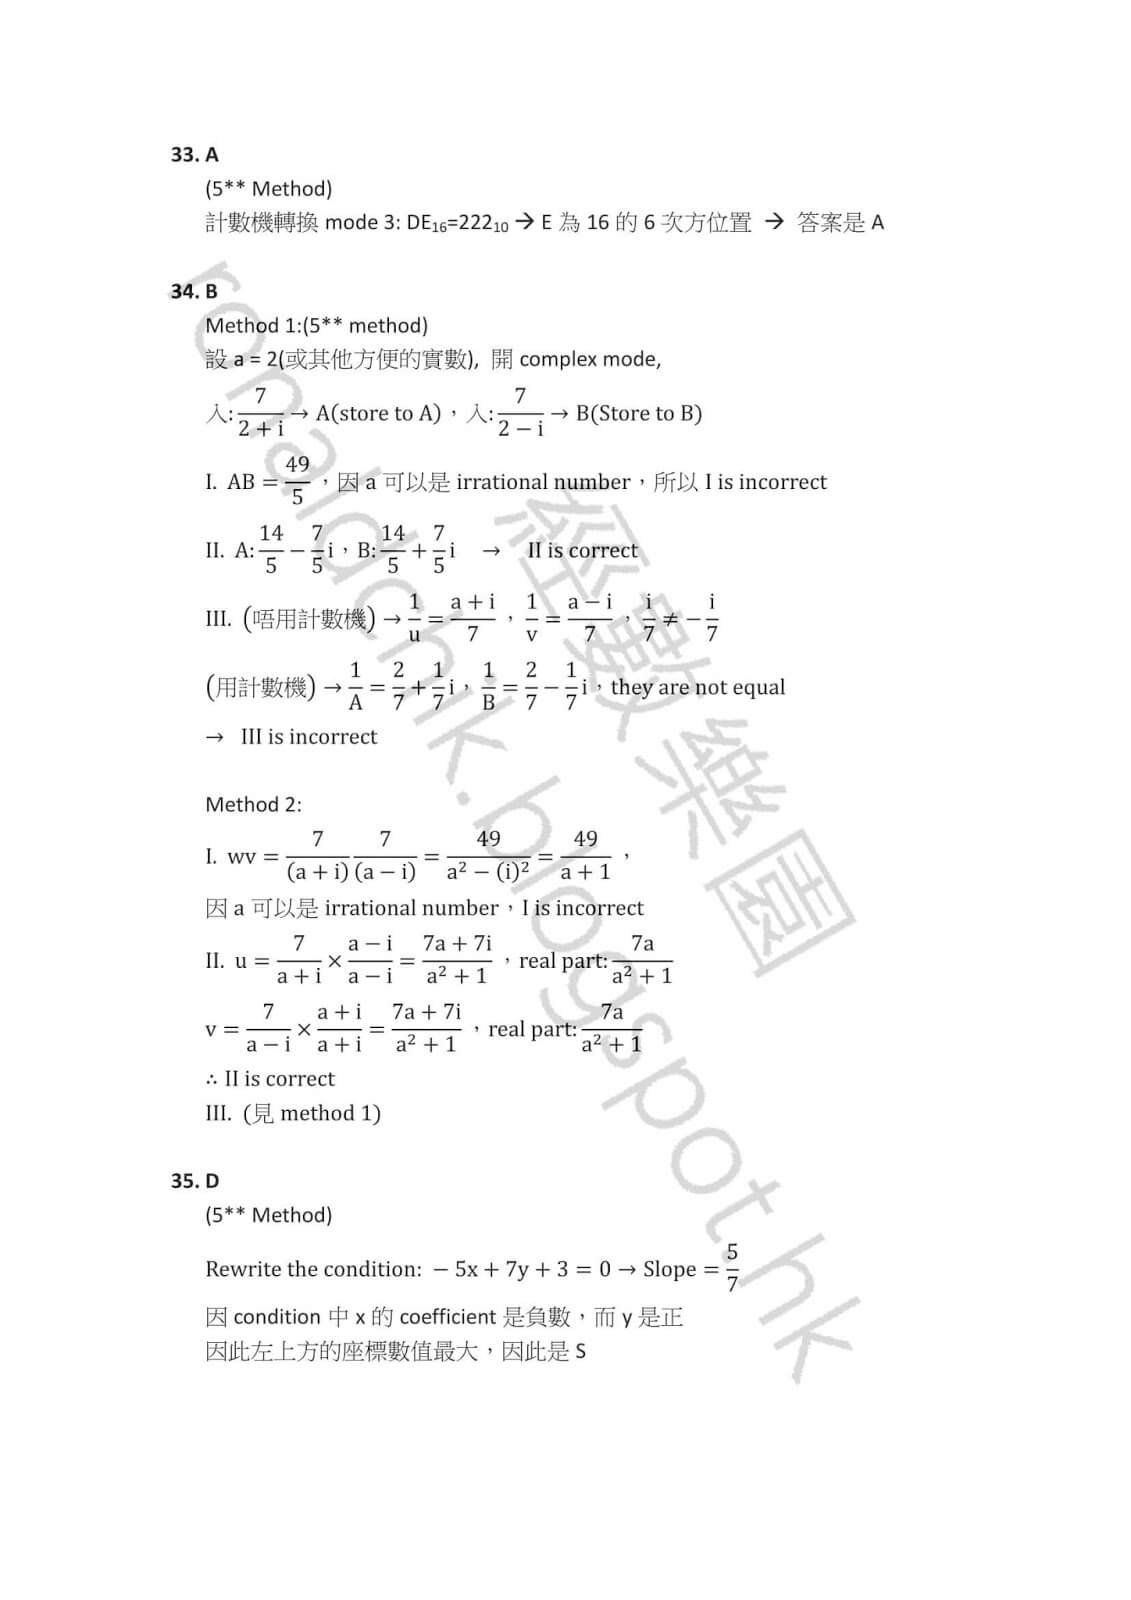 2016 DSE MATH P2 Solution